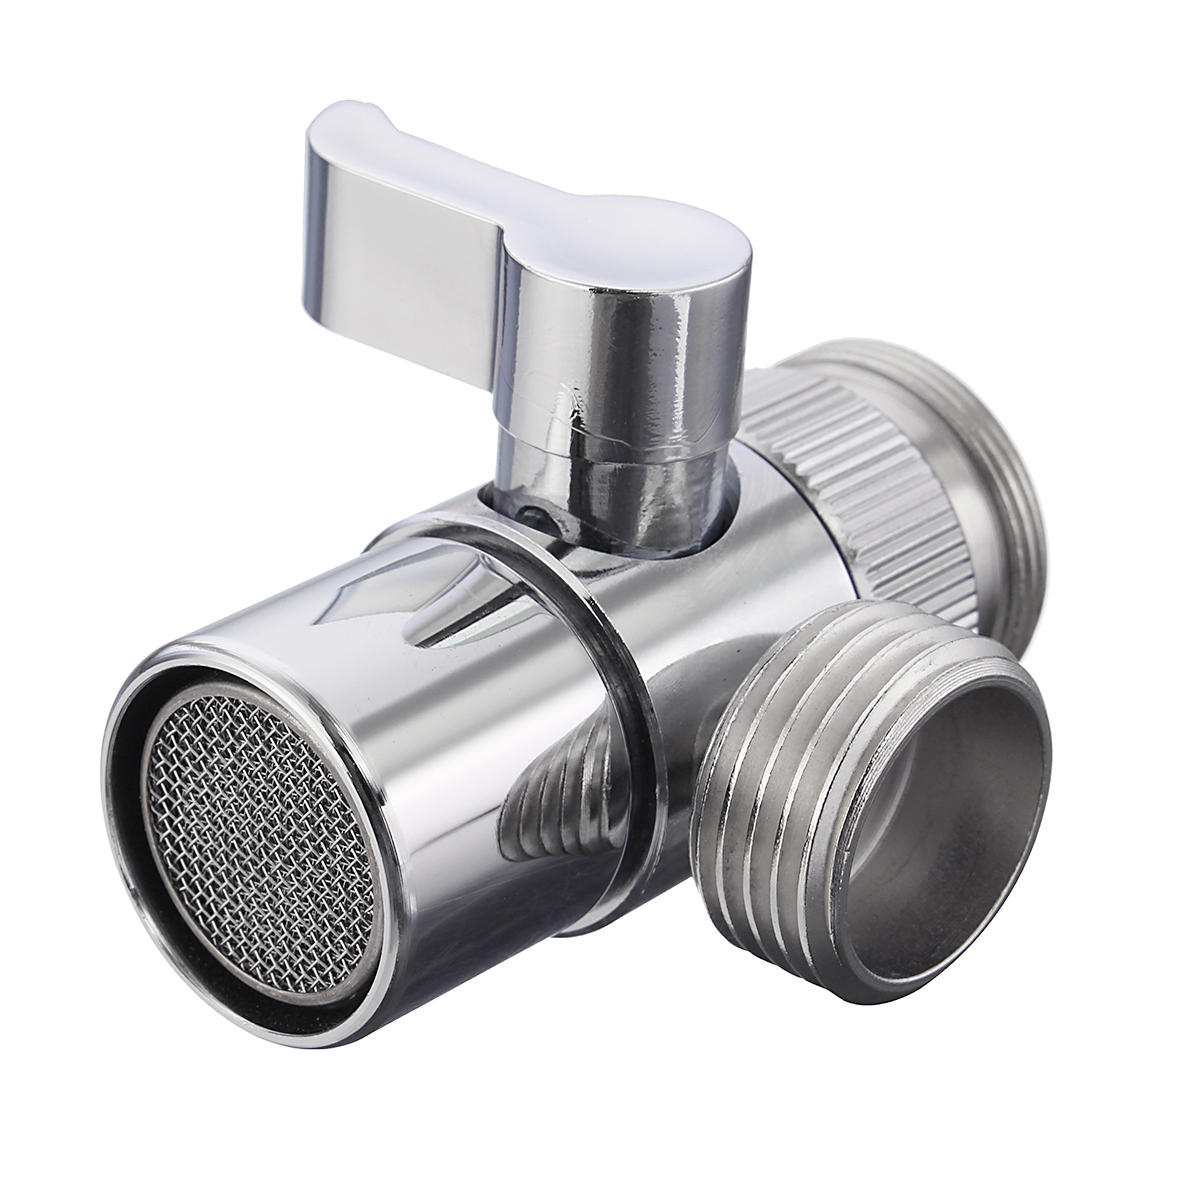 Diverter for Kitchen or Bathroom Sink Faucet Replacement Part Accessories M22 X M24 фото